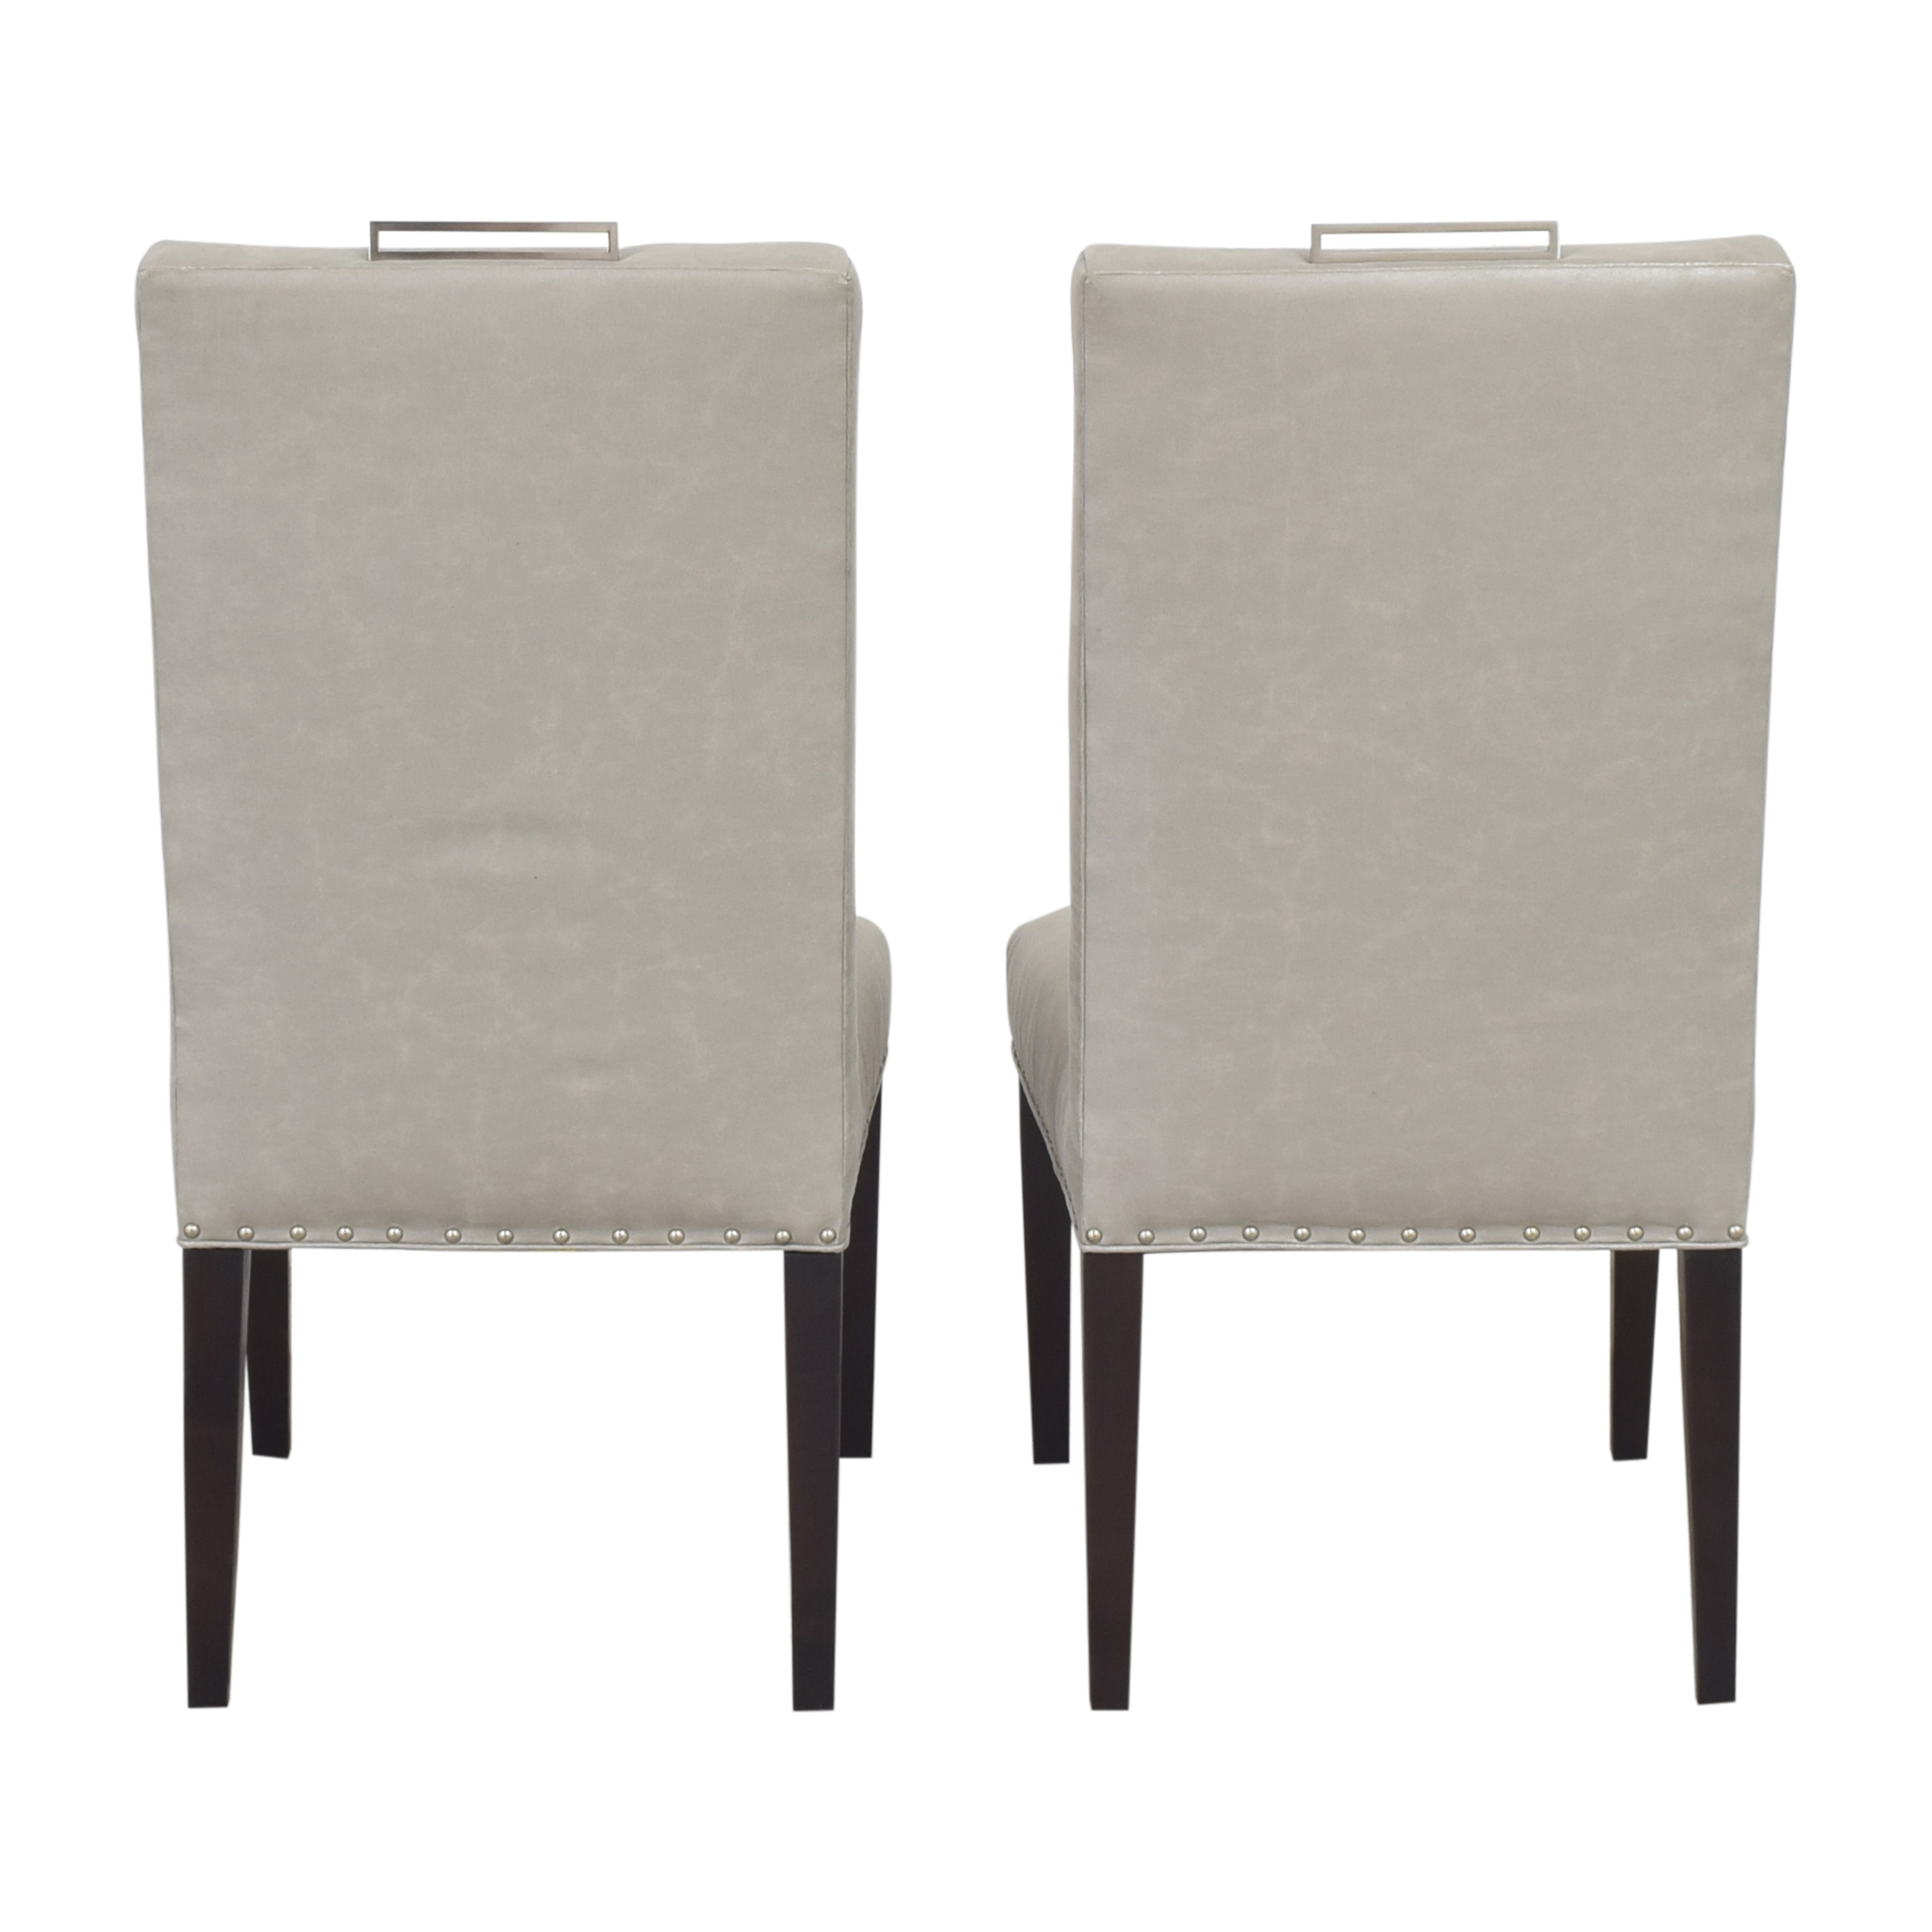 Vanguard Furniture Vanguard Michael Weiss Everhart Side Dining Chairs coupon